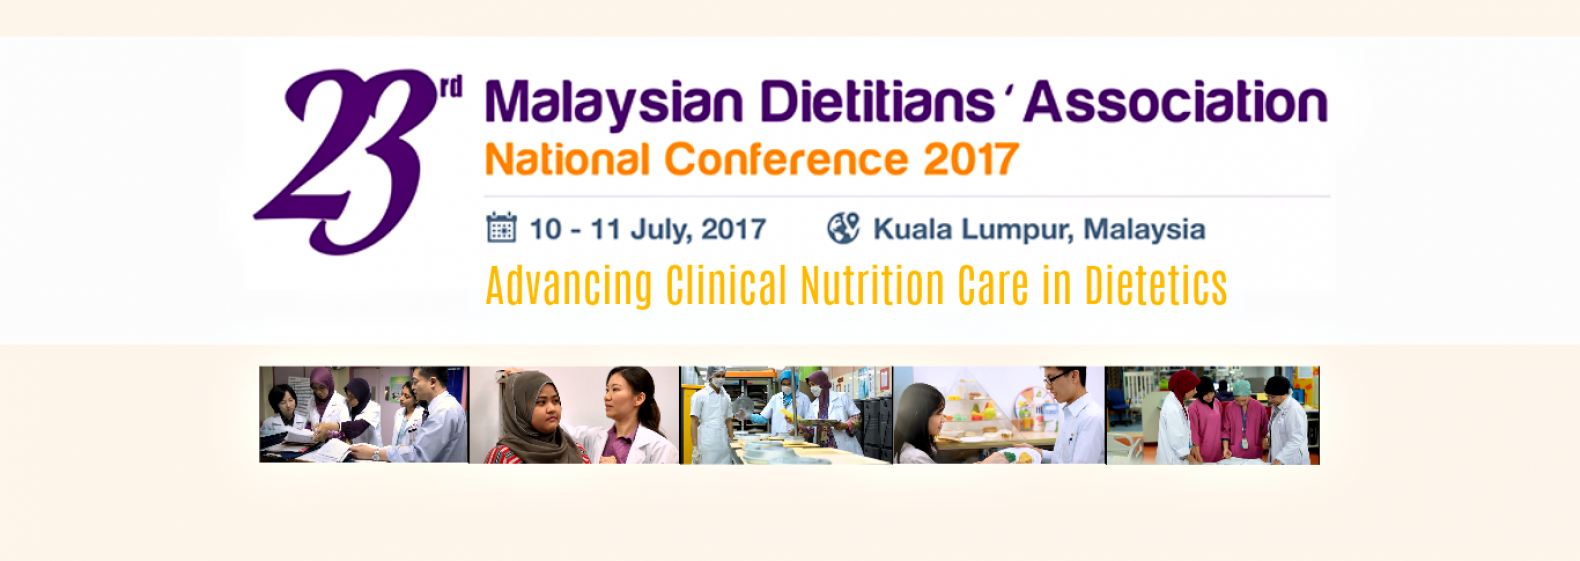 23rd MDA National Conference 2017